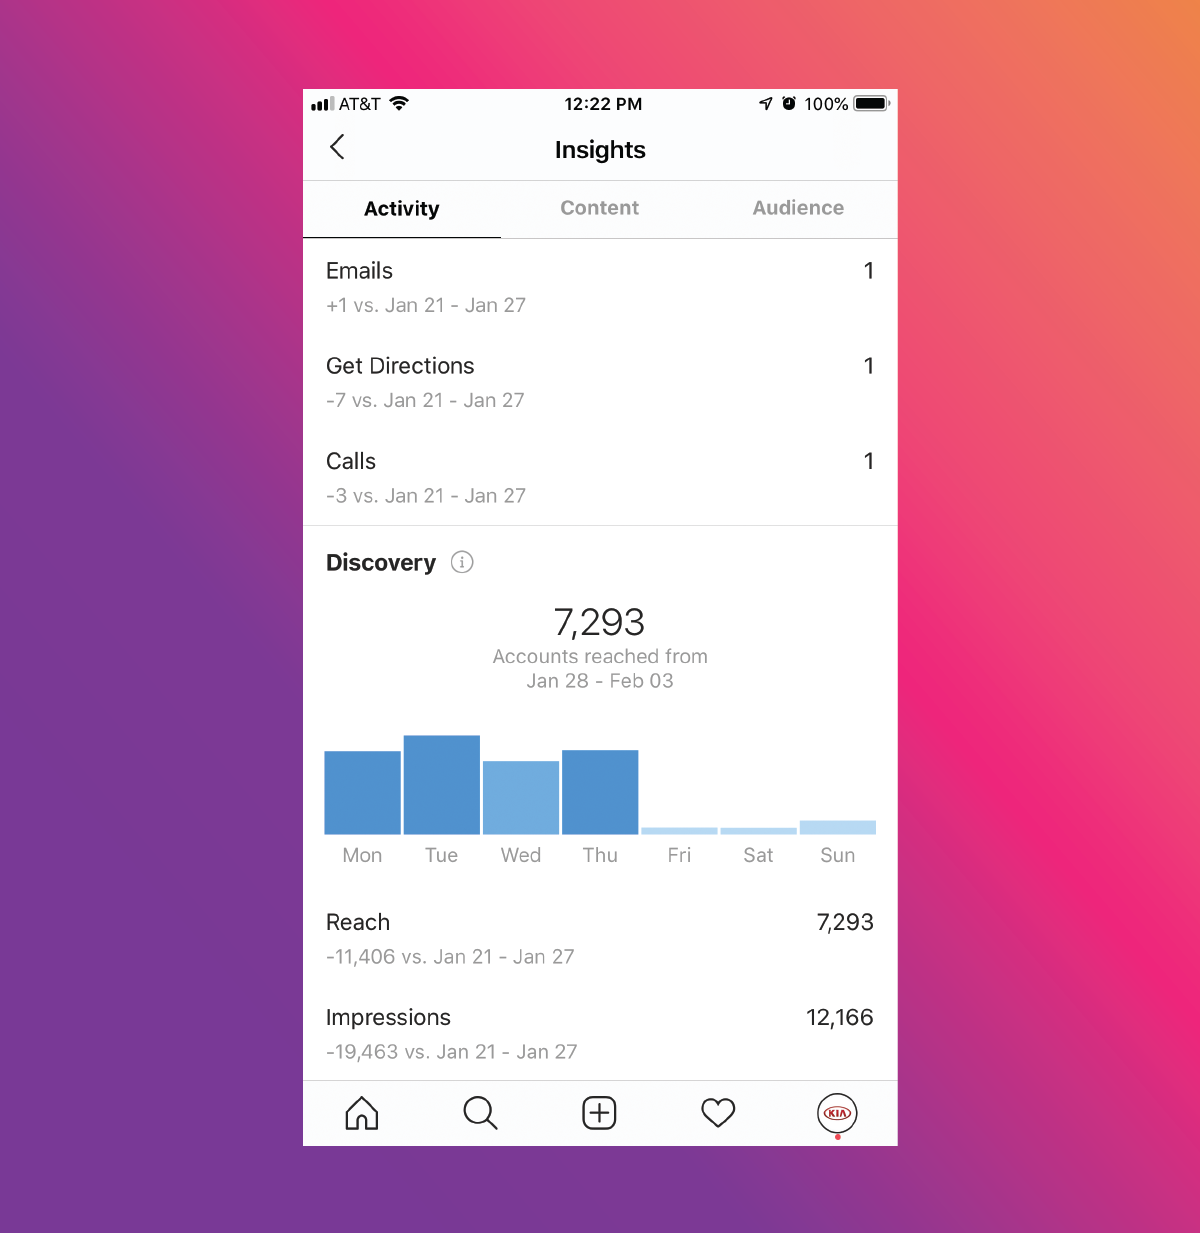 The Ultimate Guide to Instagram Analytics 2019